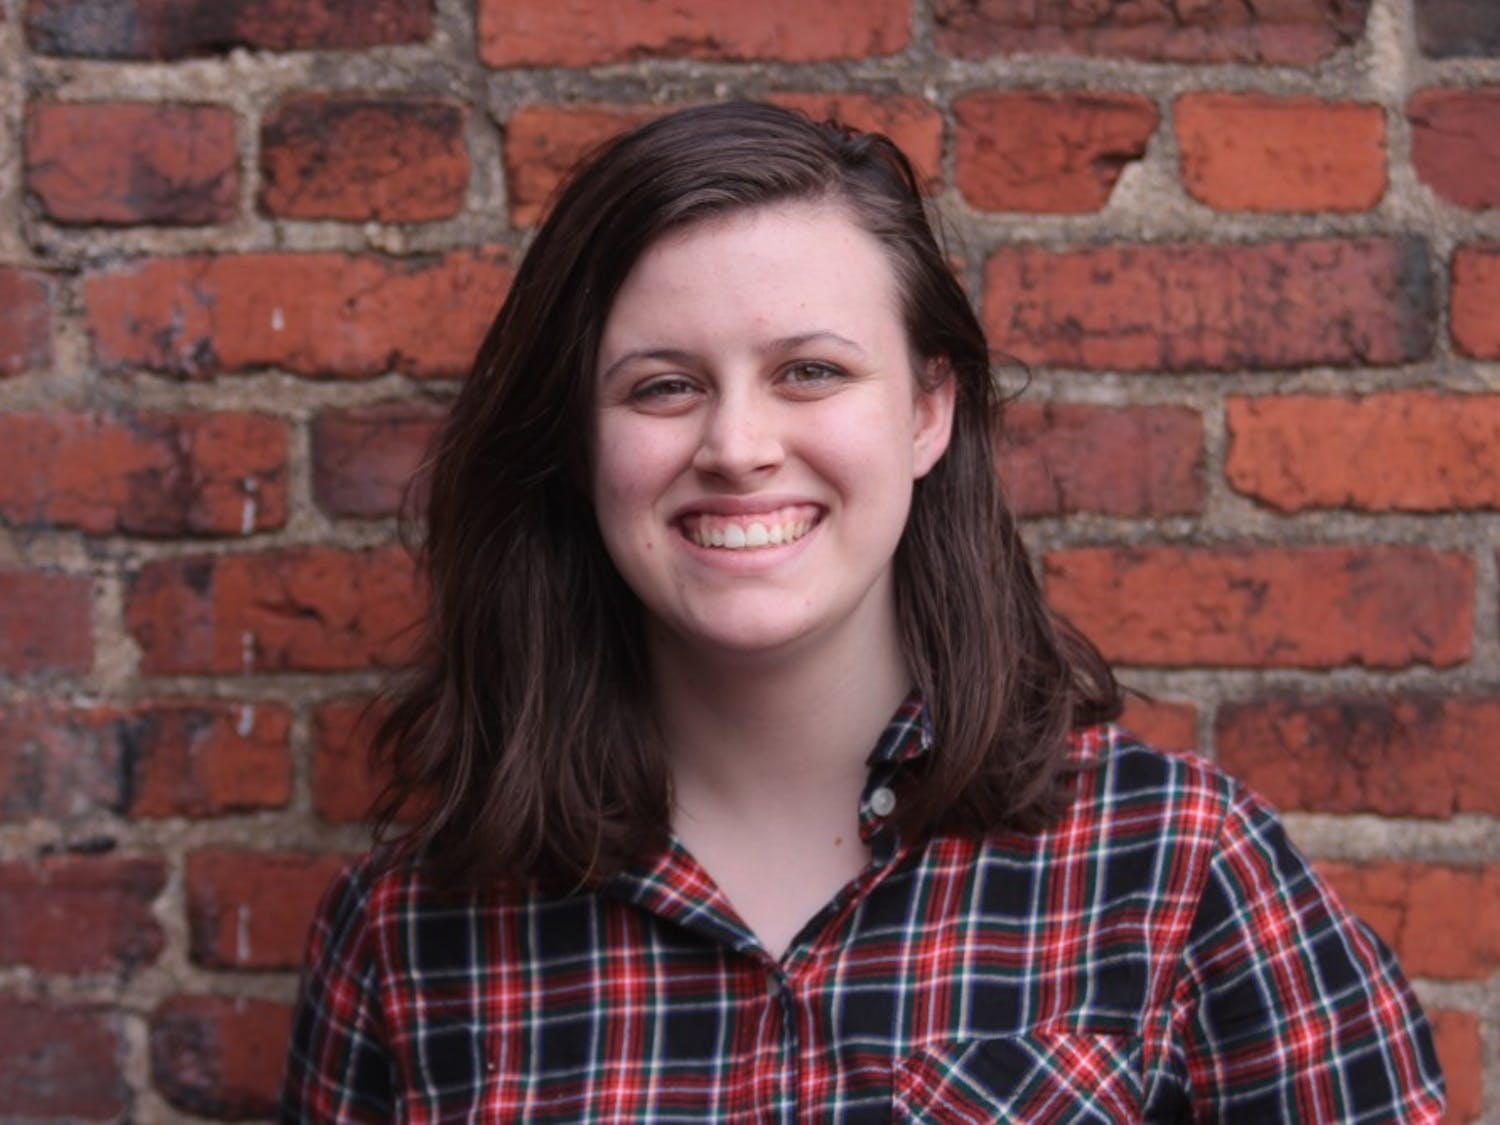 UNC junior Rachel Jones is running for the 2018-2019 Editor-in-chief position at The Daily Tar Heel.